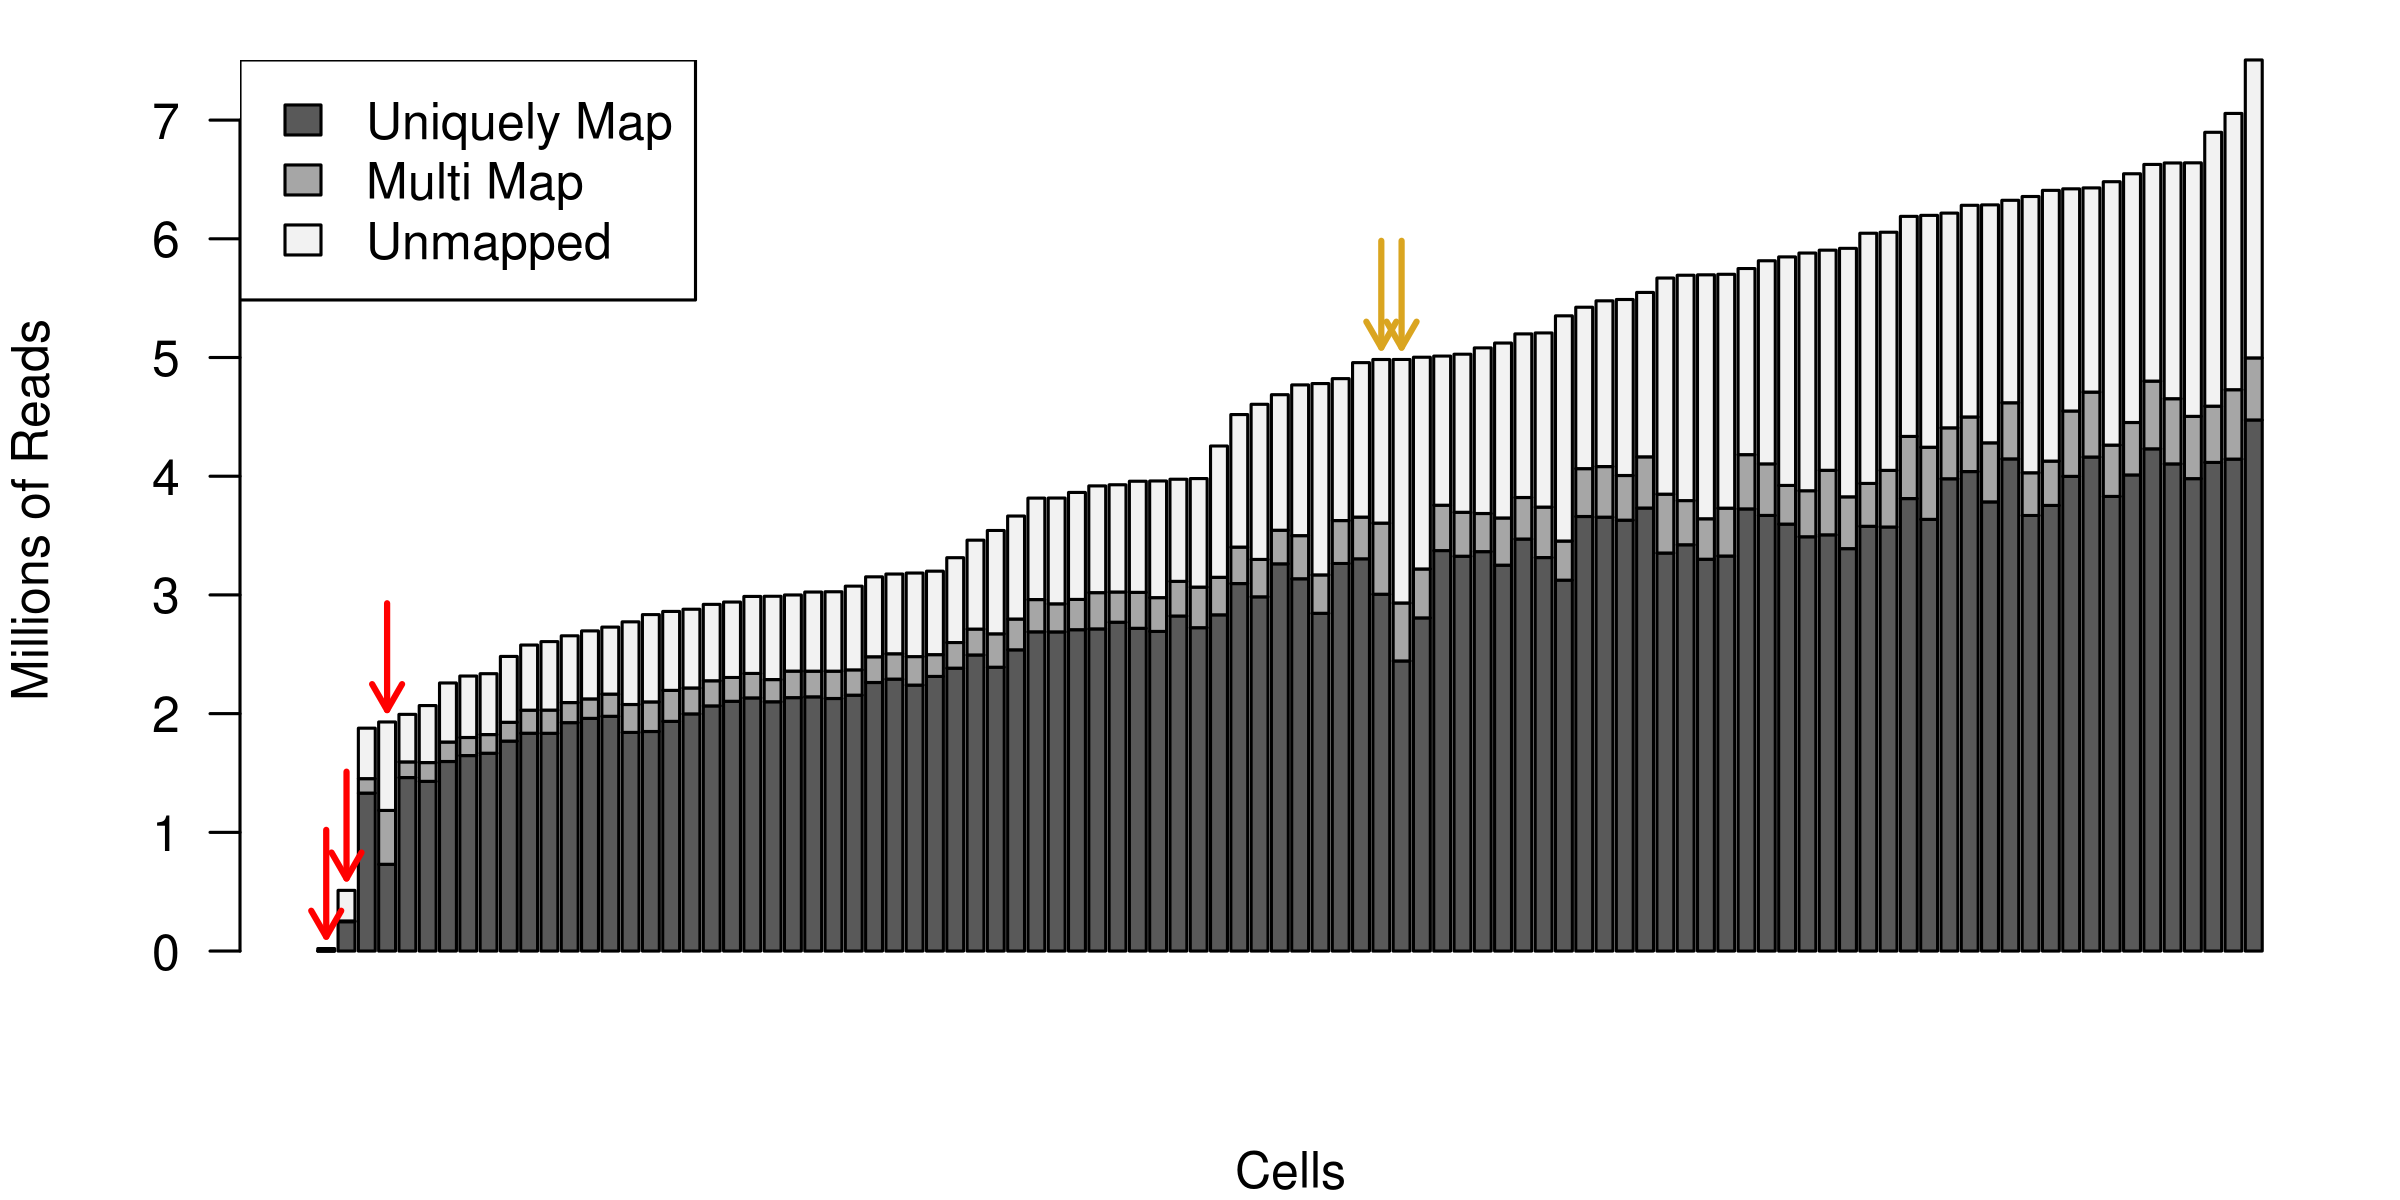 figures/Bergiers_exp1_mapping_by_cell.png